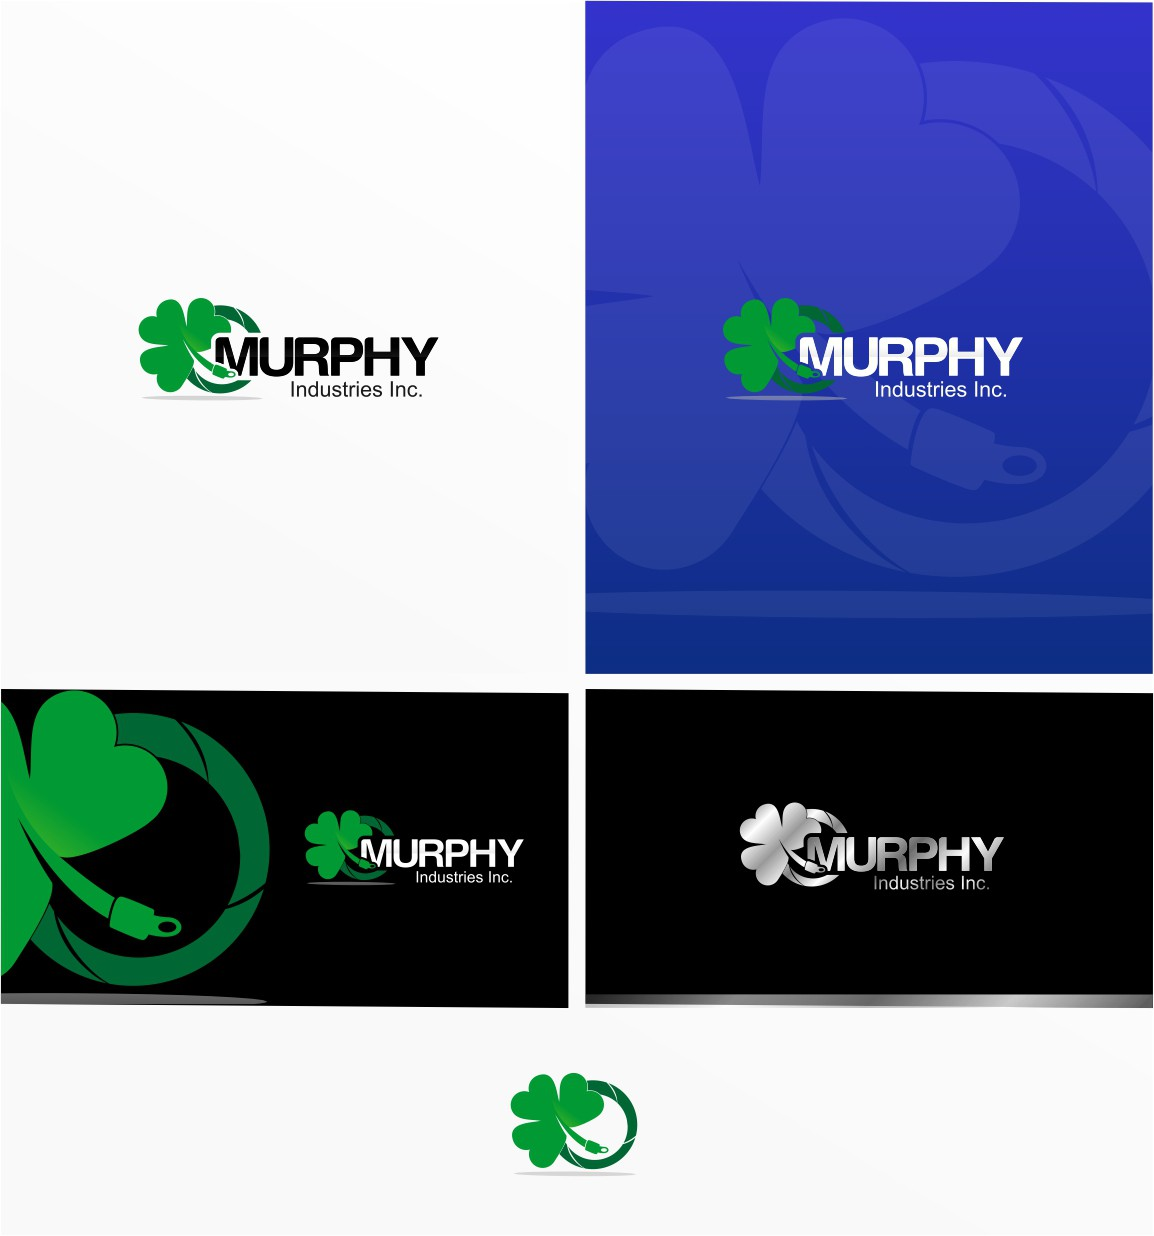 We need your CREATIVE VISION for Murphy Industries